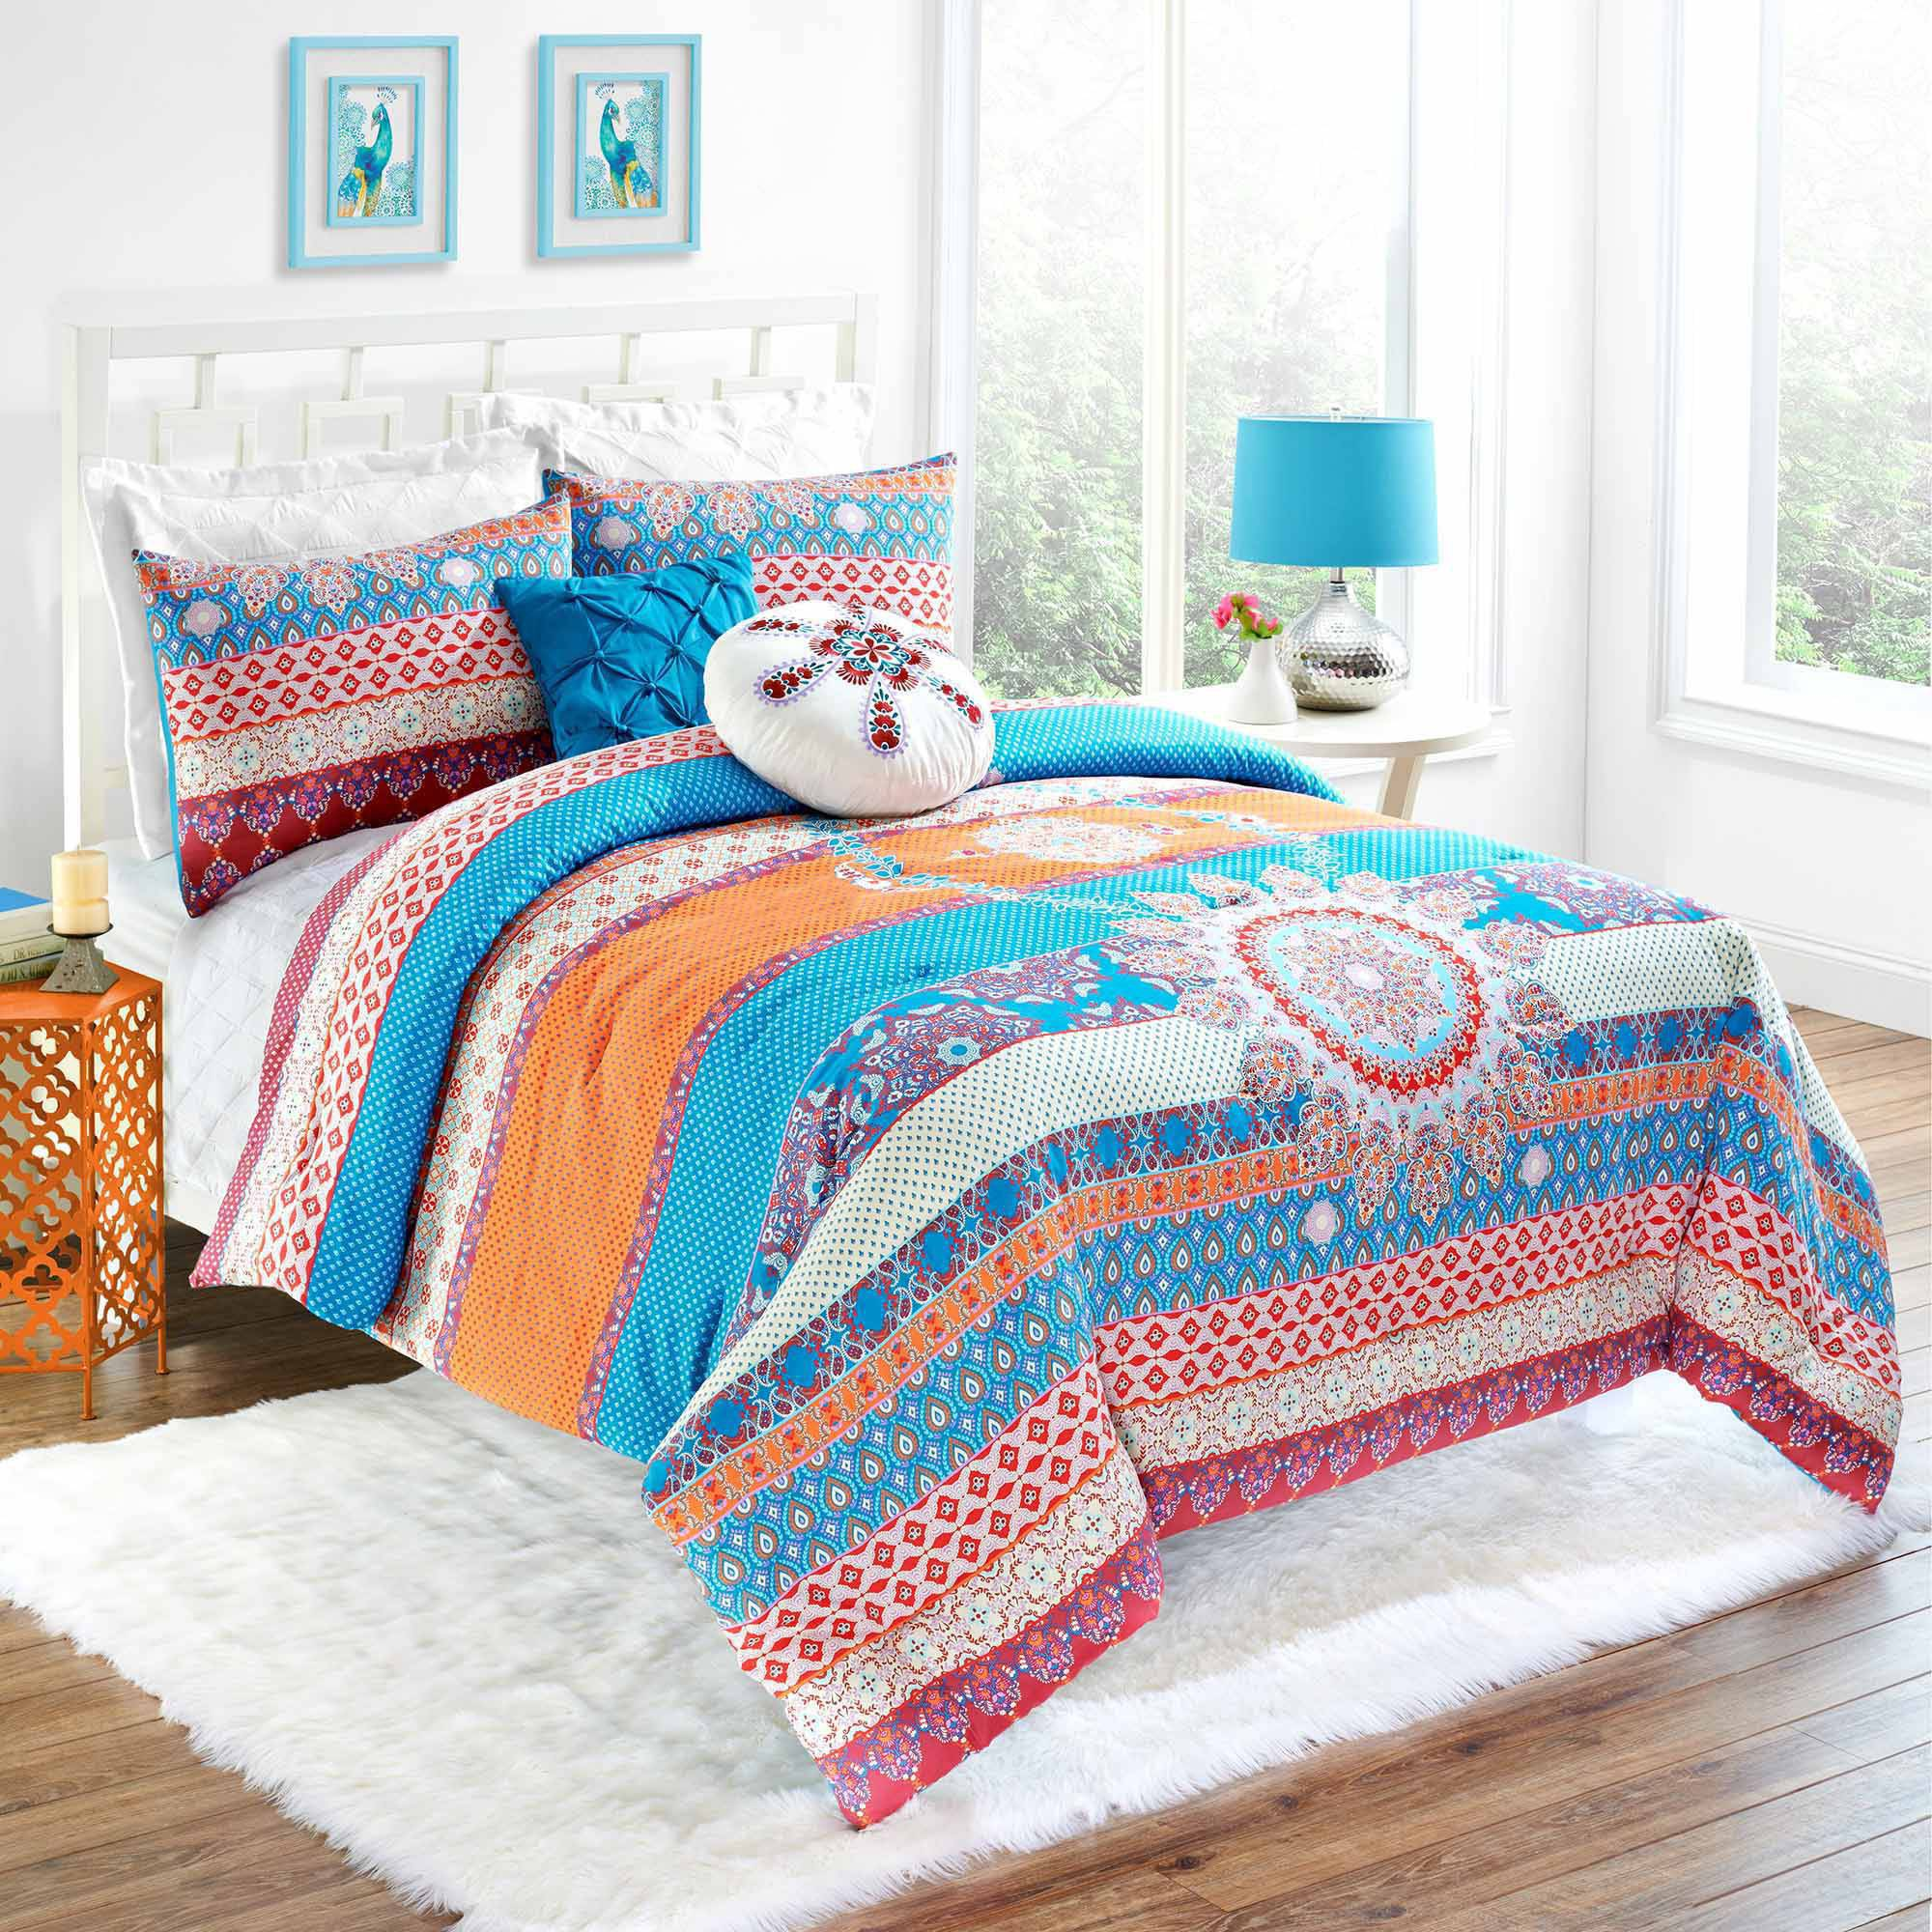 Vue Vista Bedding Comforter Set